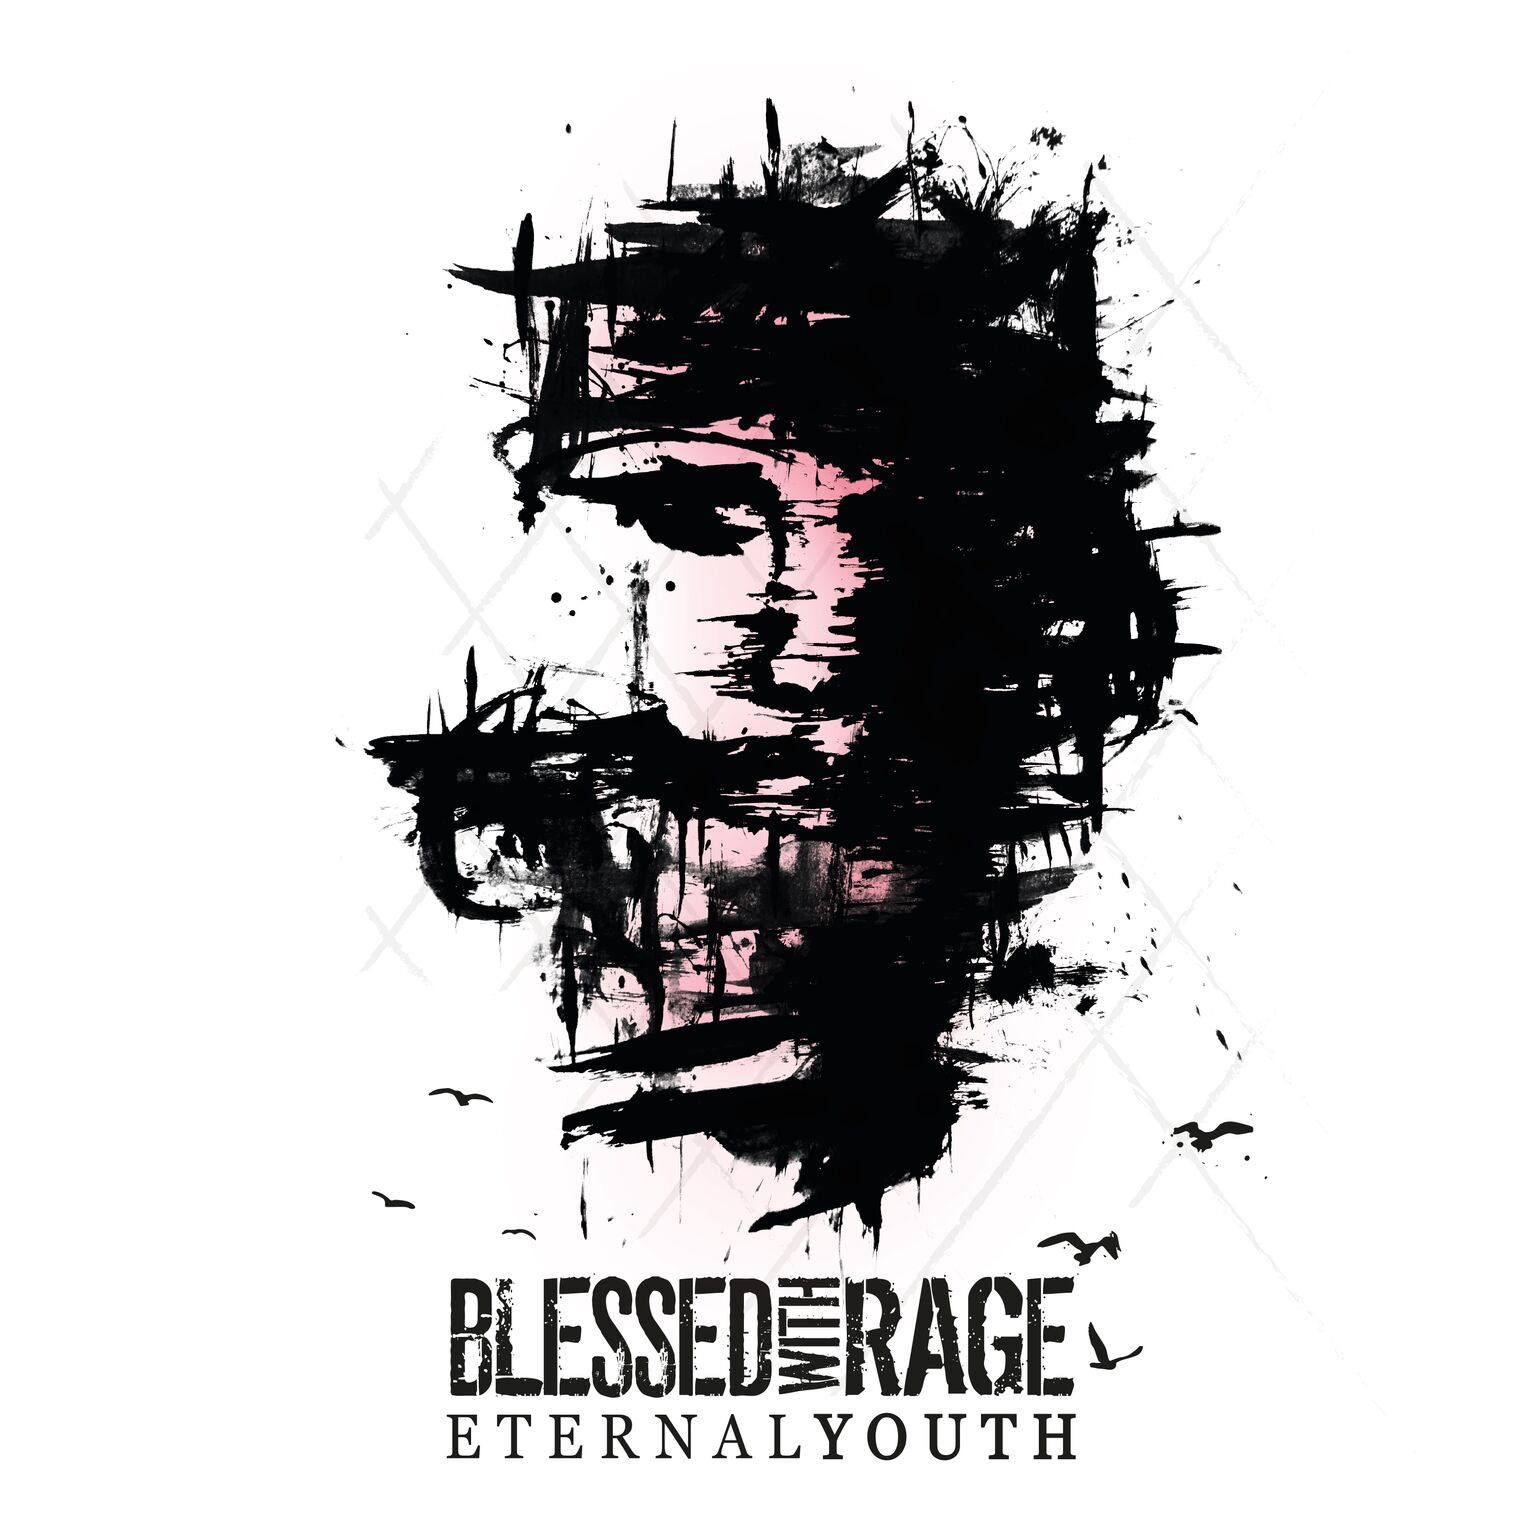 Blessed With Rage - Dark Passion Play [single] (2017)